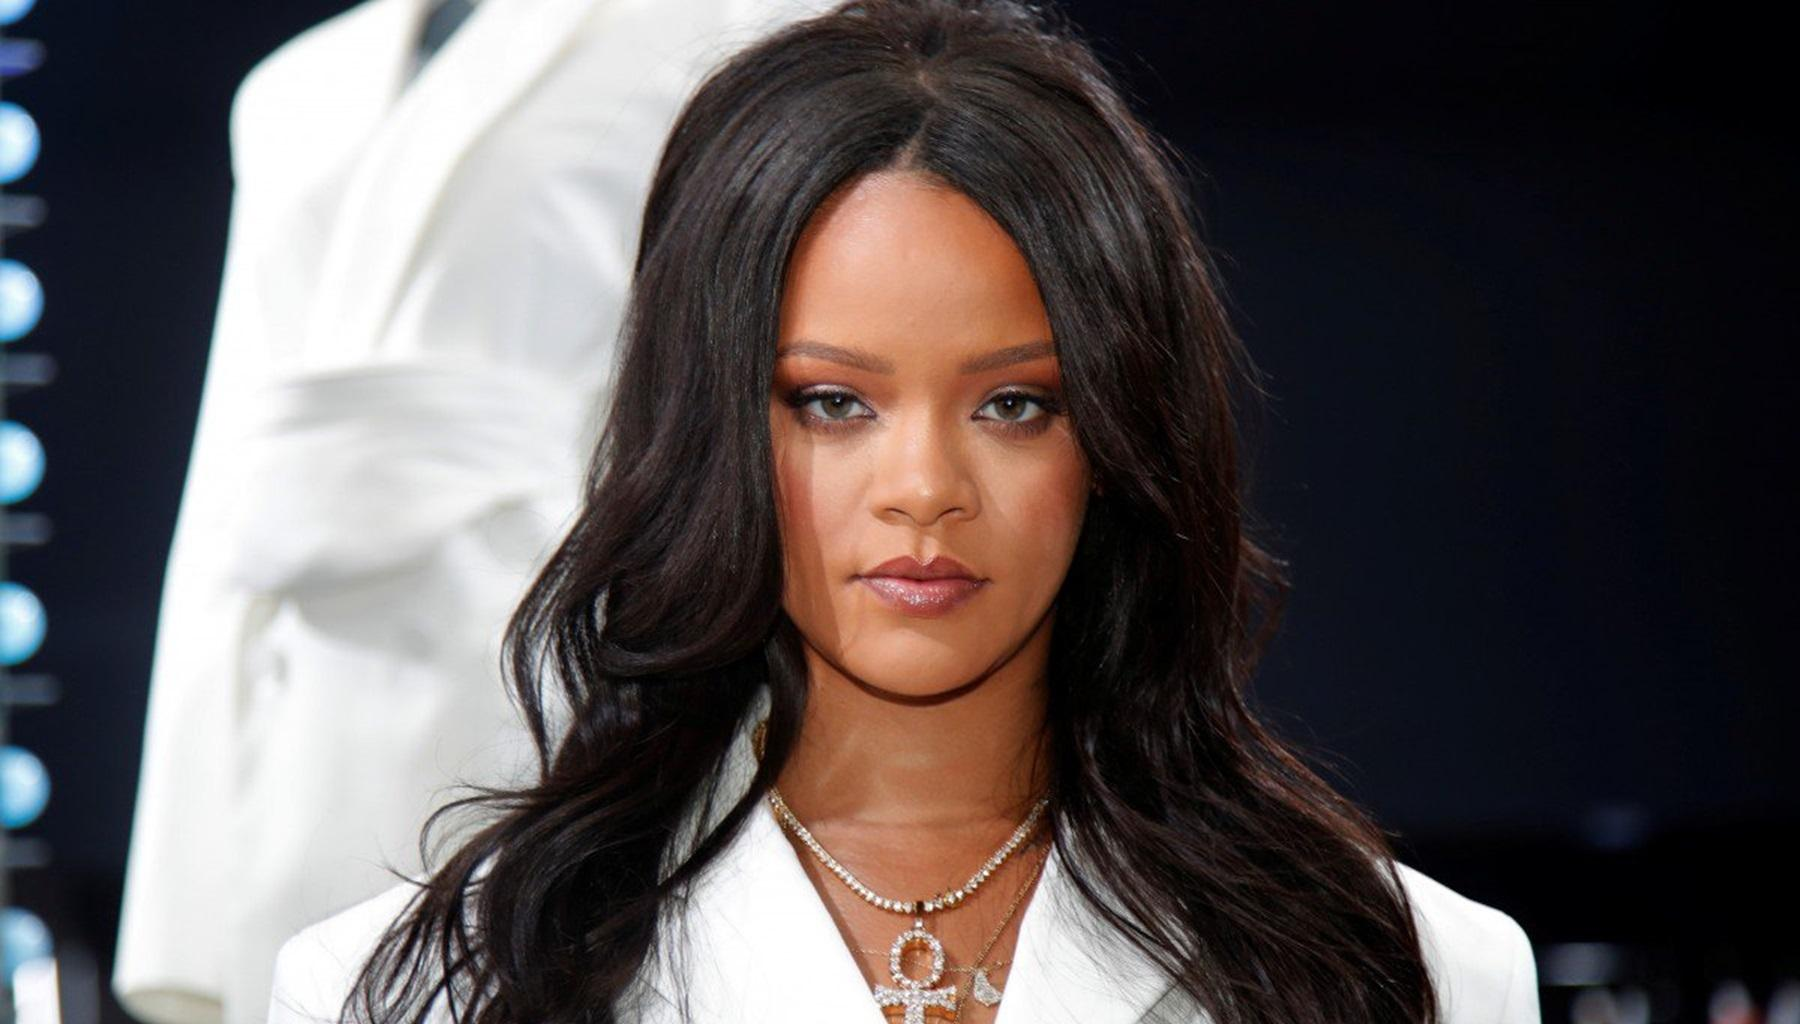 Rihanna Flaunts Her Slimmed-Down Body In Subtle Ways Via New Photos -- Some Fans Are Already Complaining She Is Too Thin